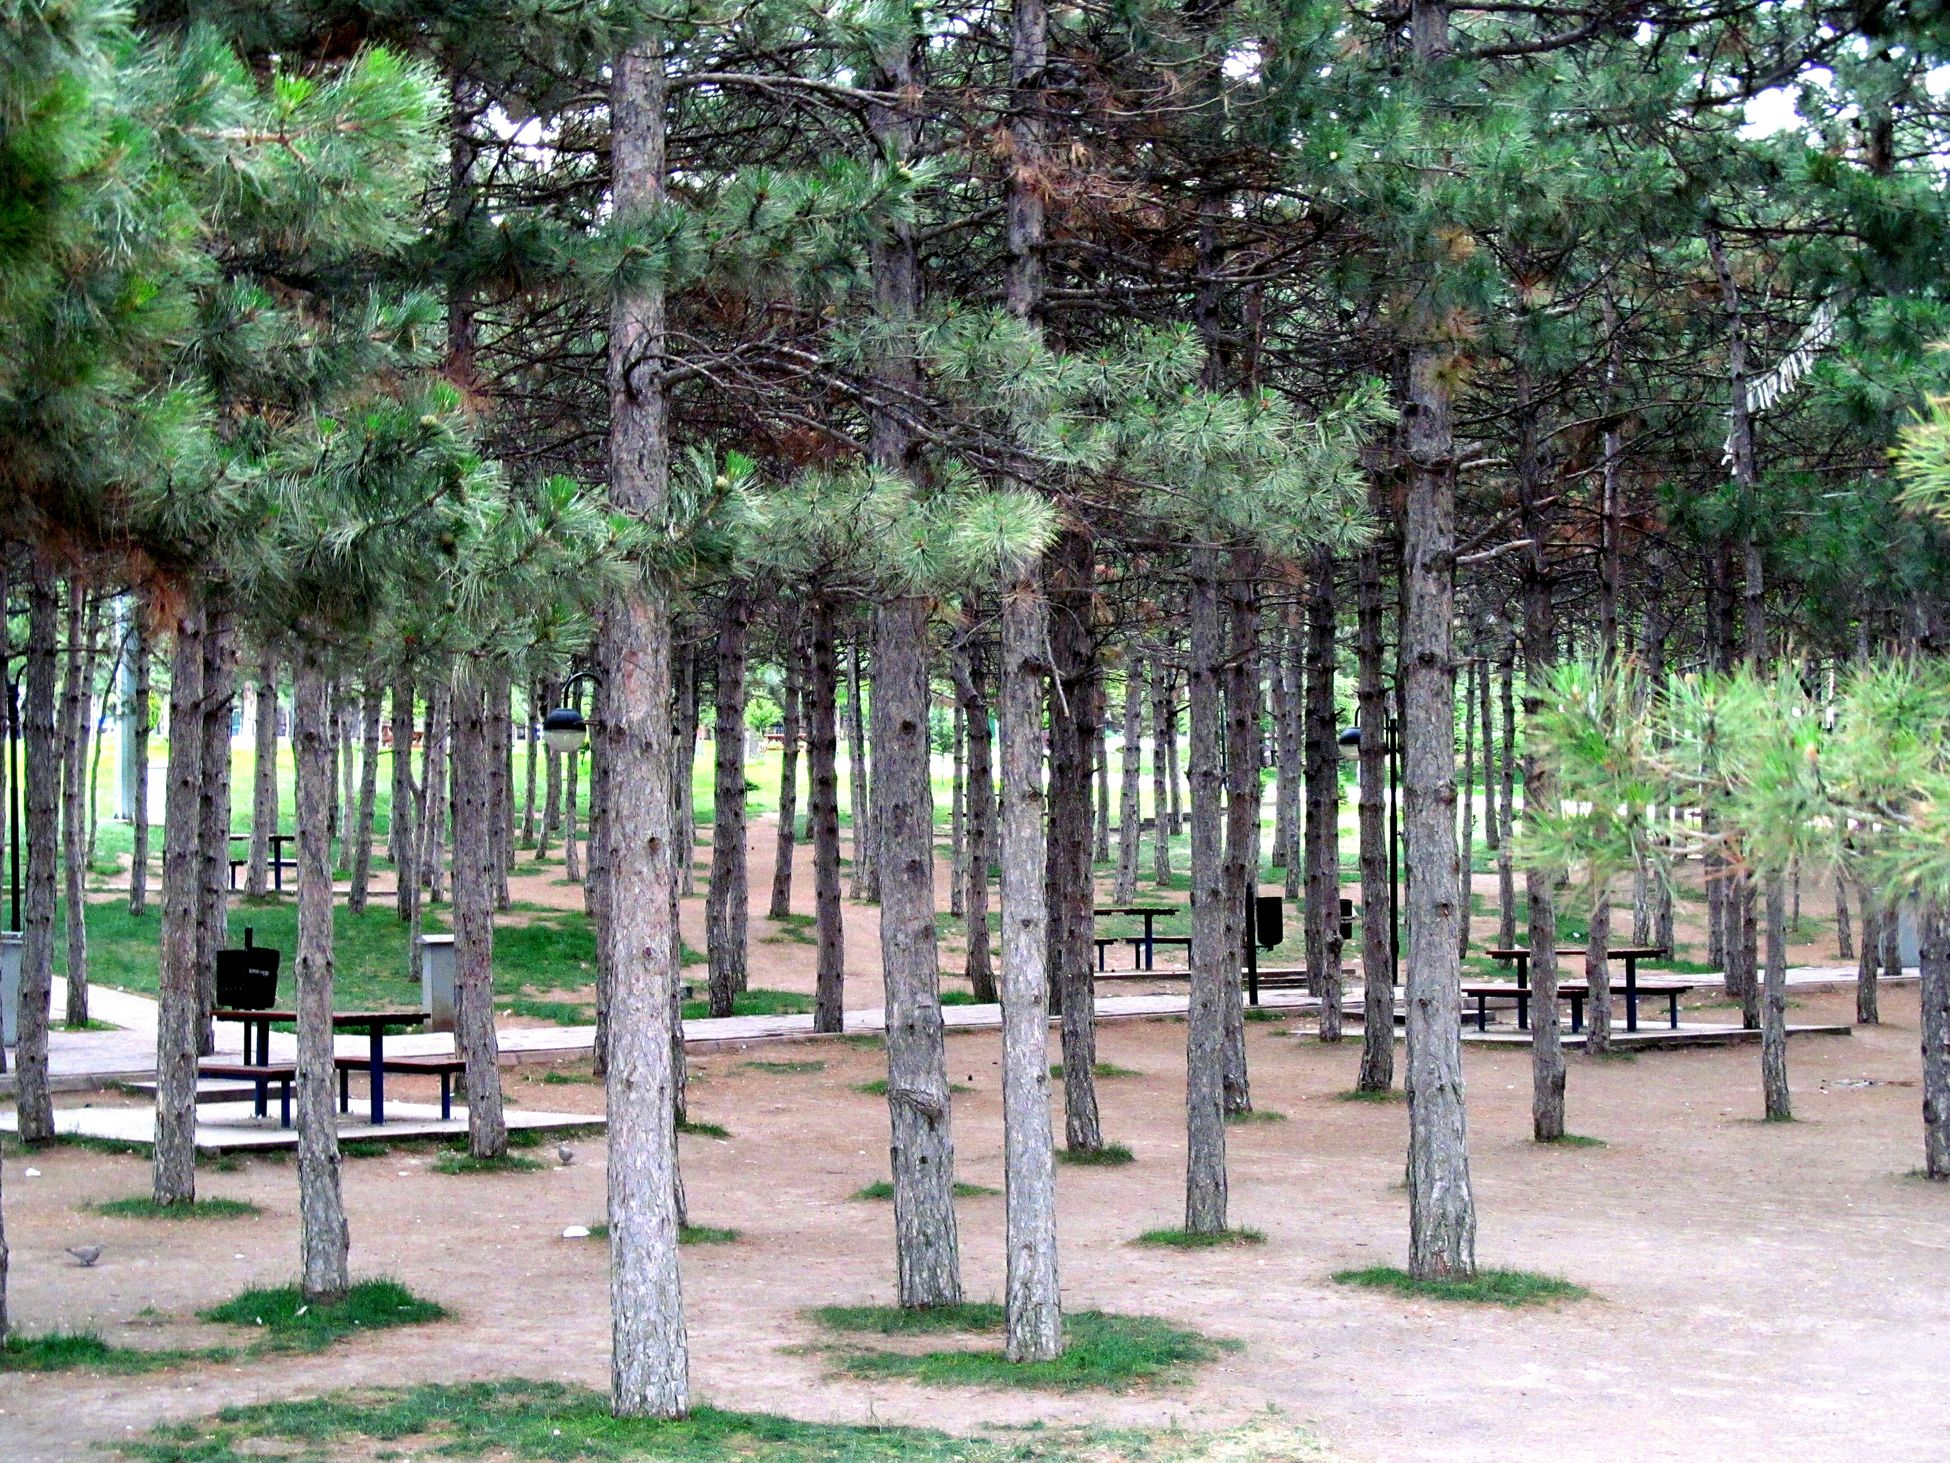 Pine Pine Trees Trees Hugging A Tree Park Green Bench Canon Powershot Sx150 IS